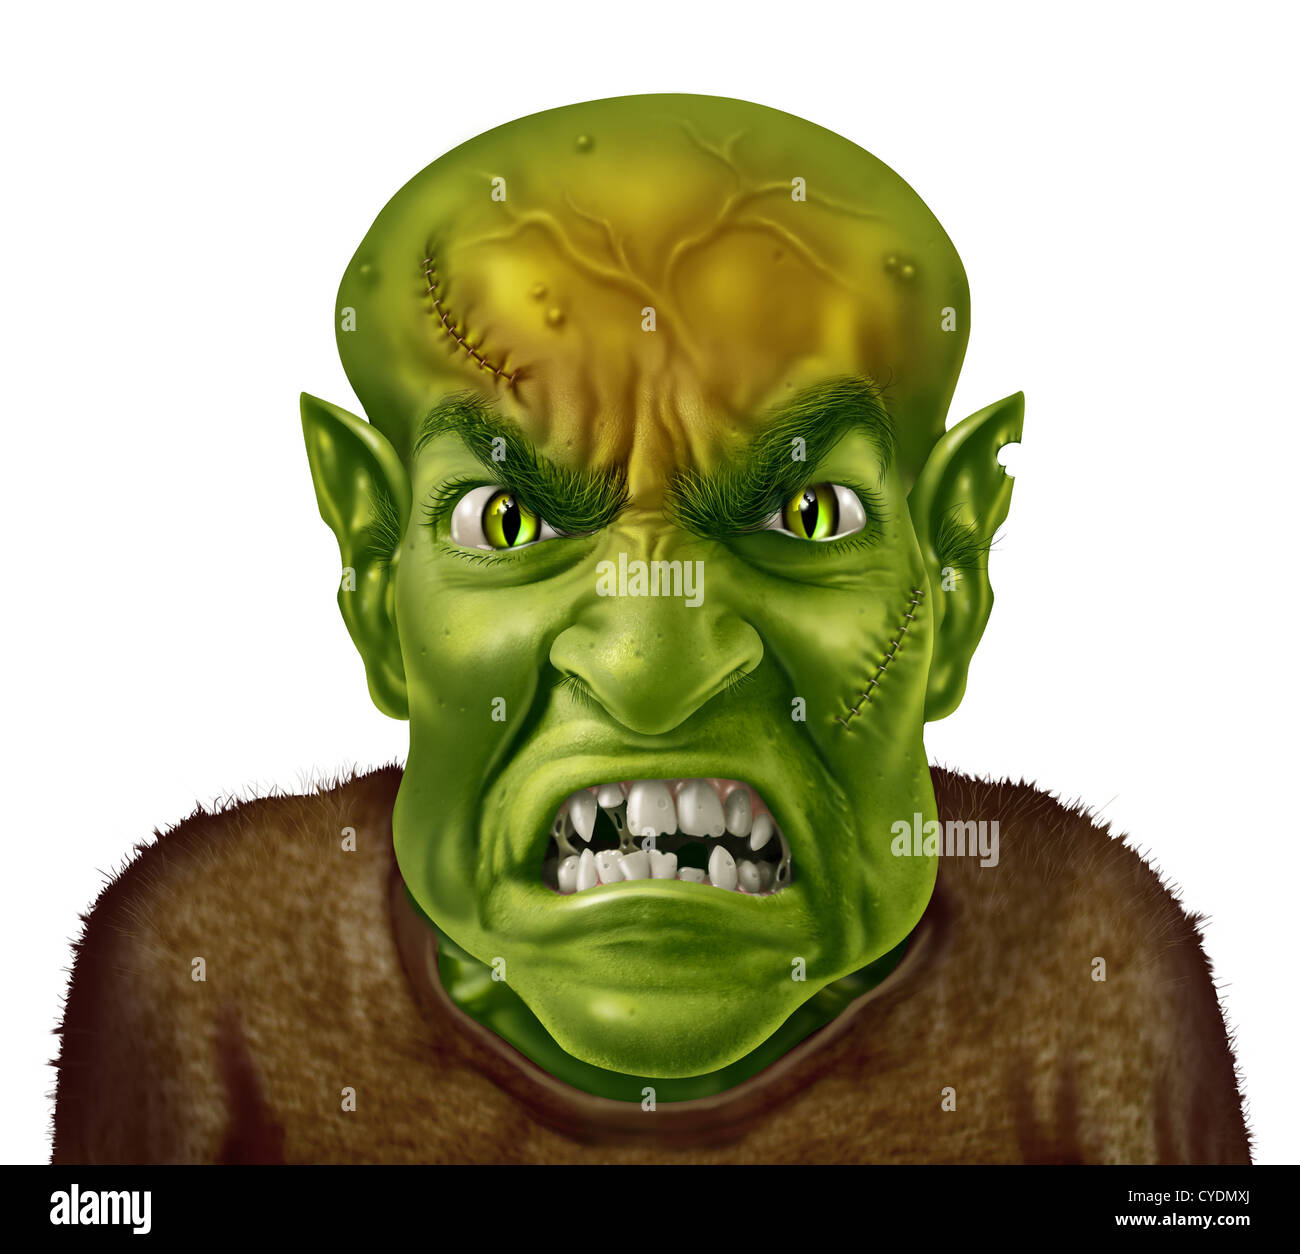 Anger Management concept with a green monster face mad scientist type of character screaming with an angry human - Stock Image